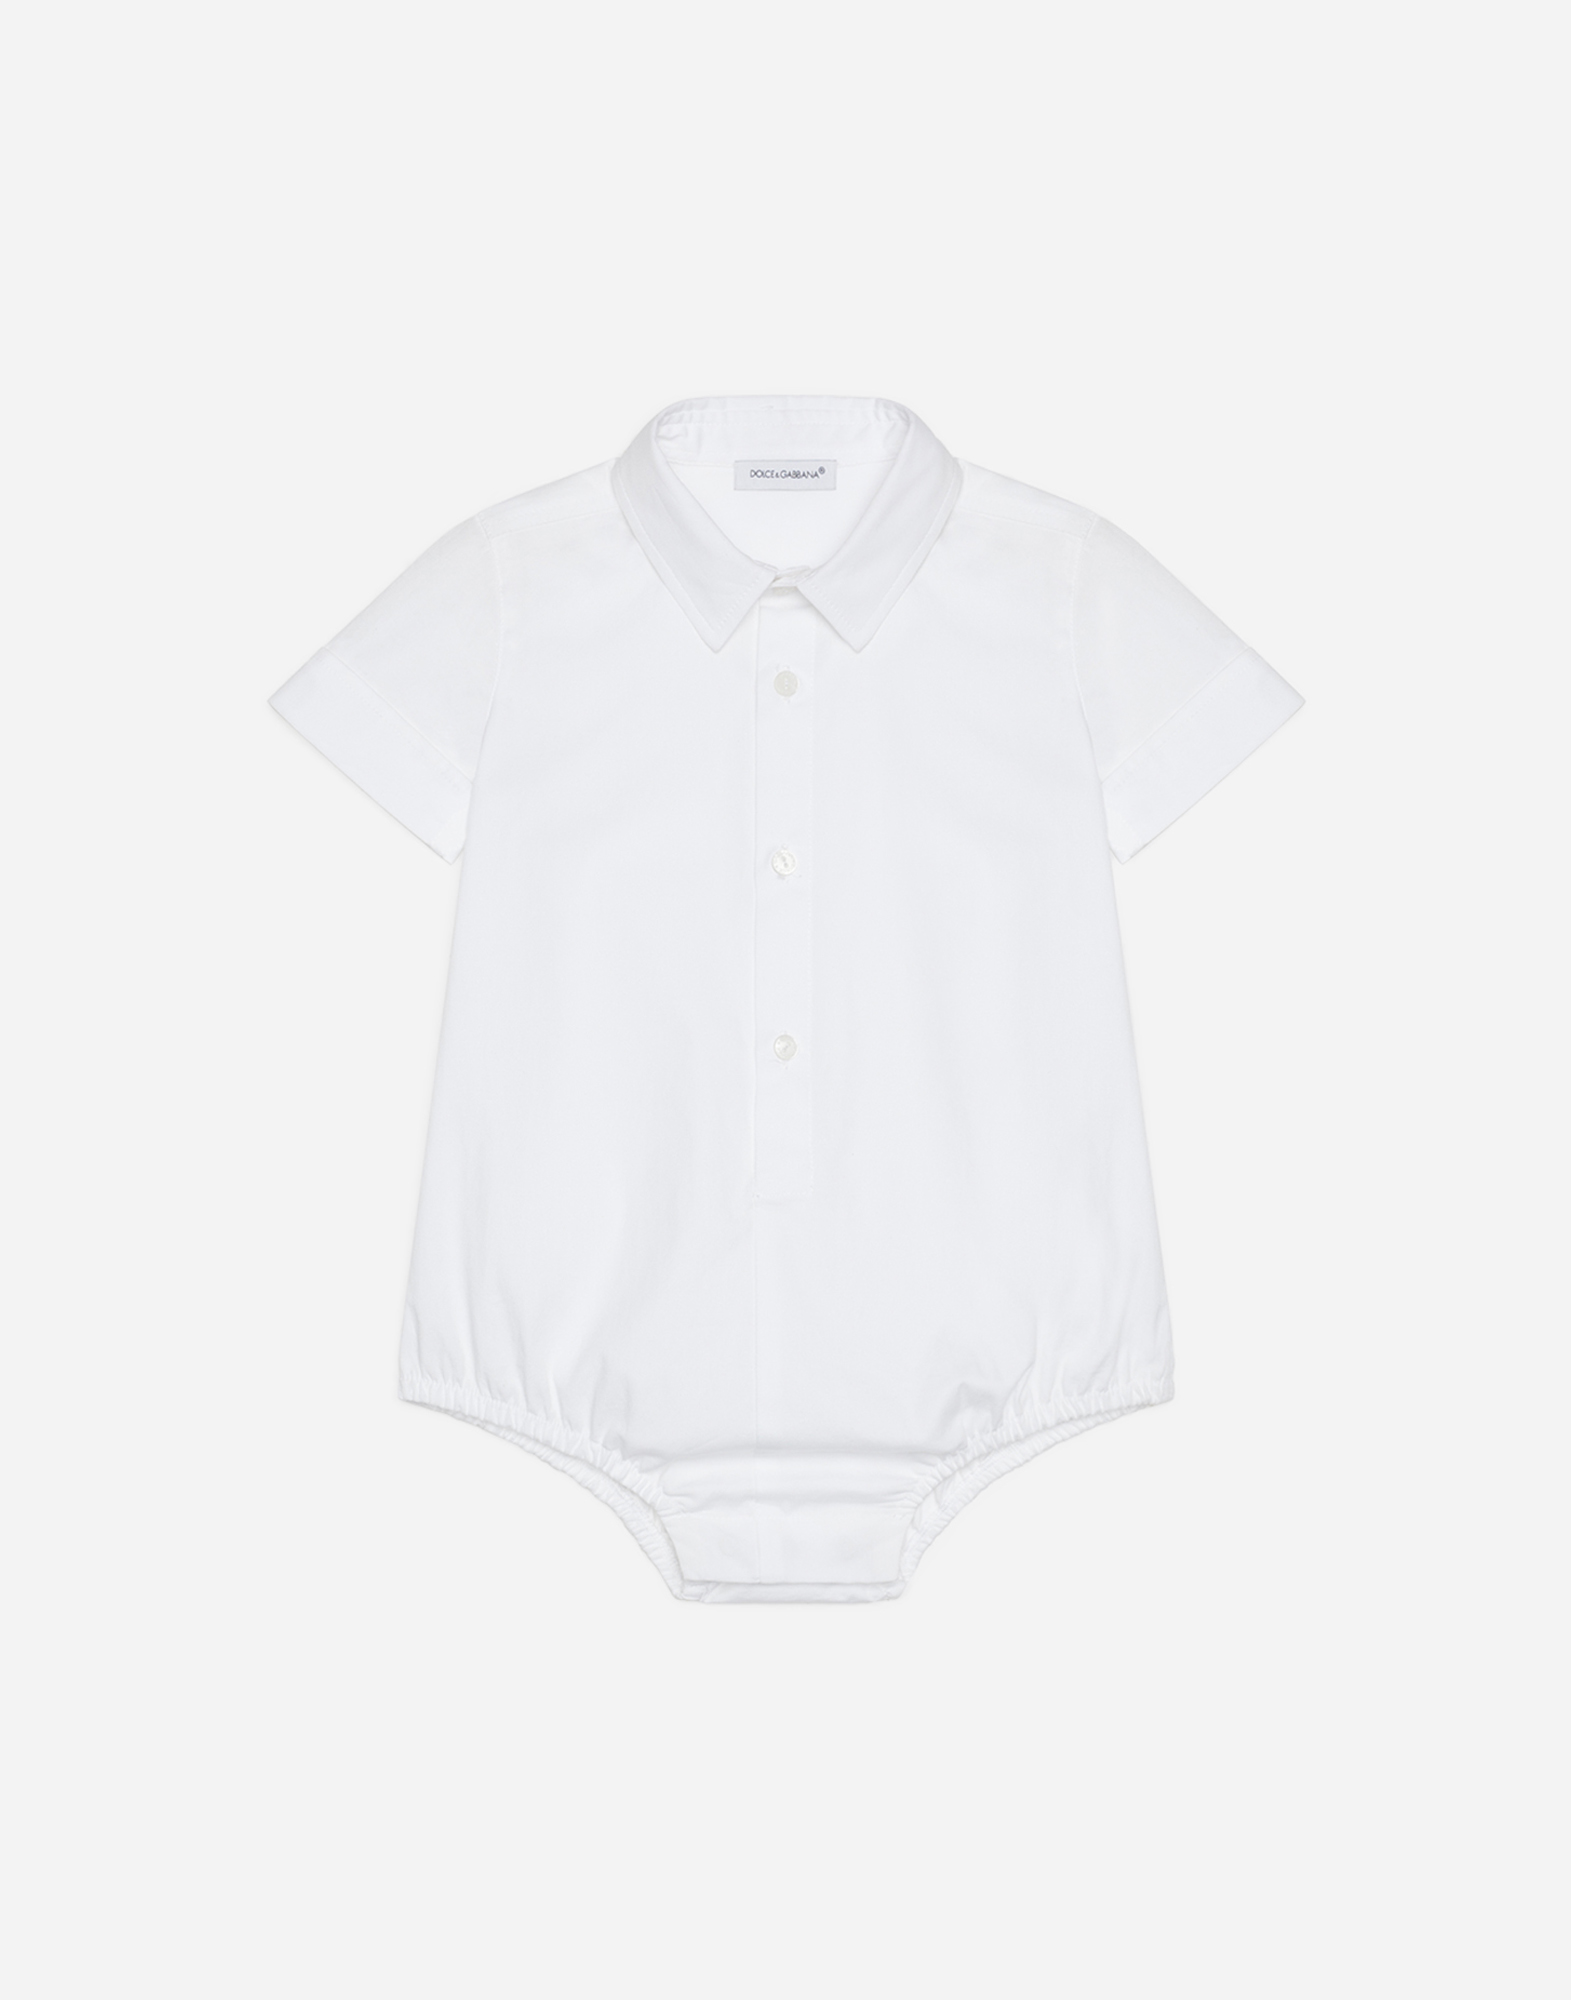 c808d1f5928b Newborn Boys  Rompers